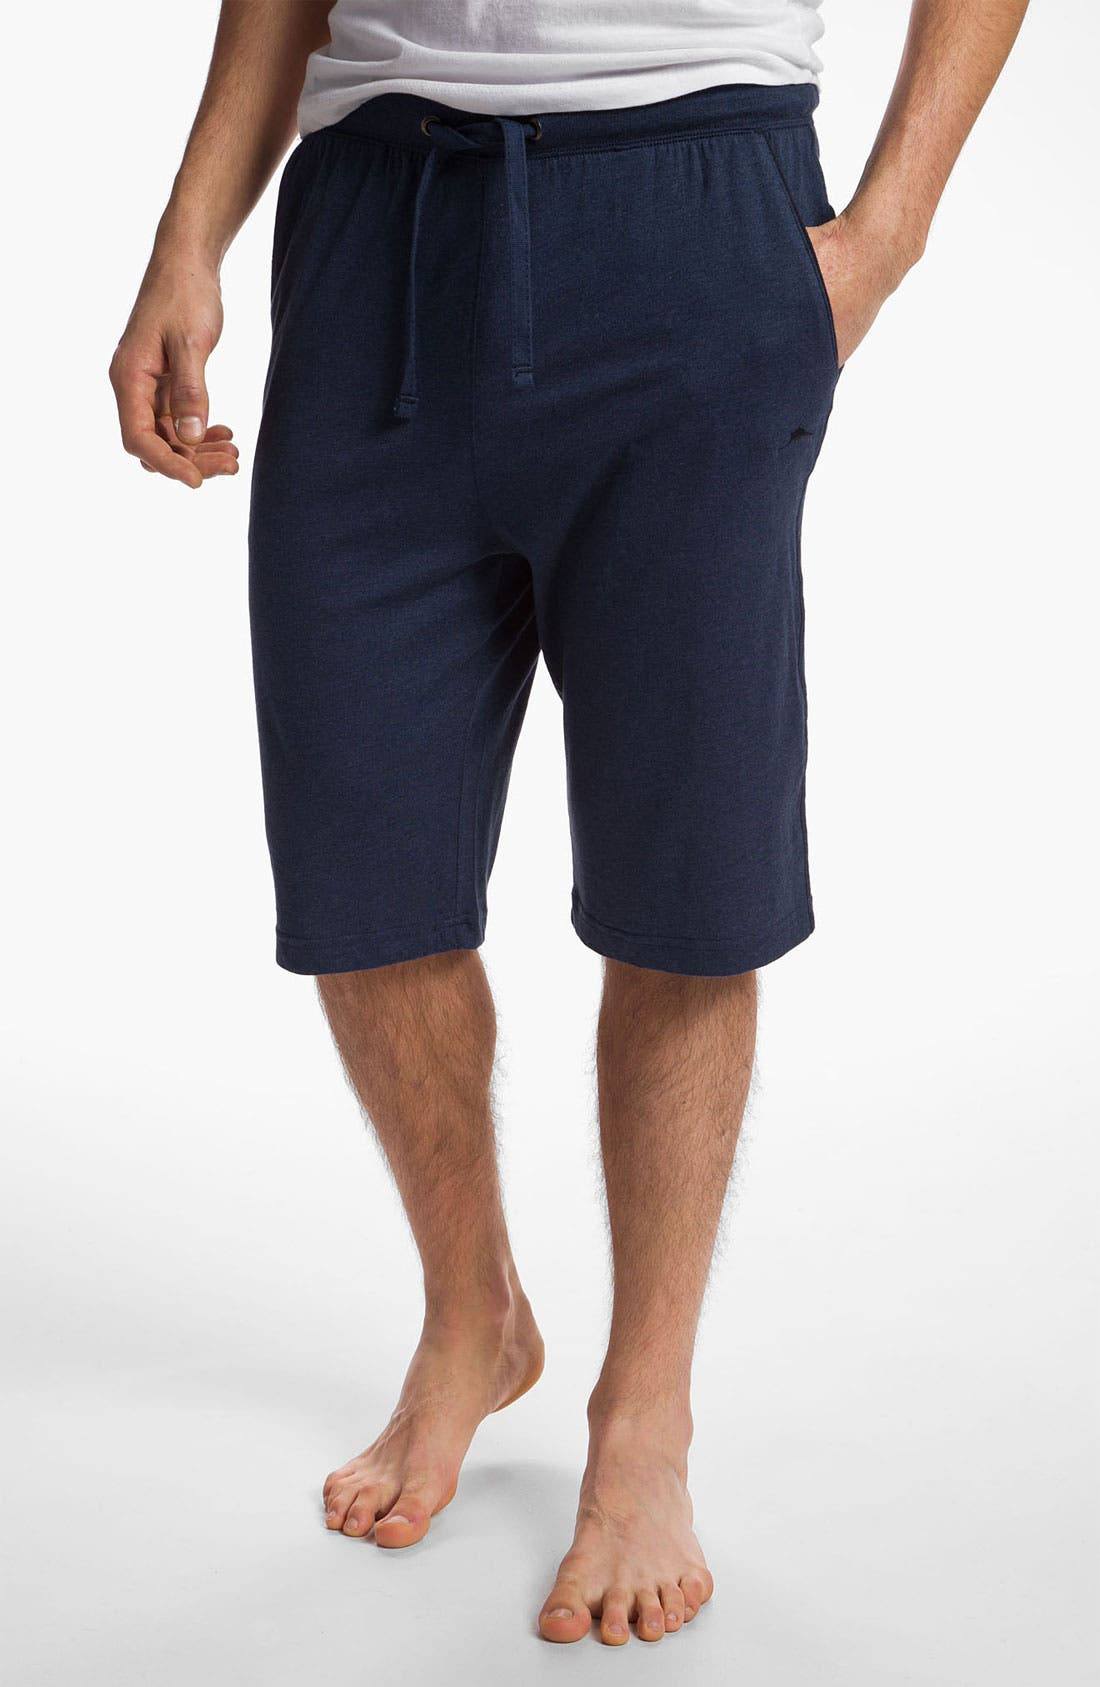 Alternate Image 1 Selected - Tommy Bahama Cotton Blend Lounge Shorts